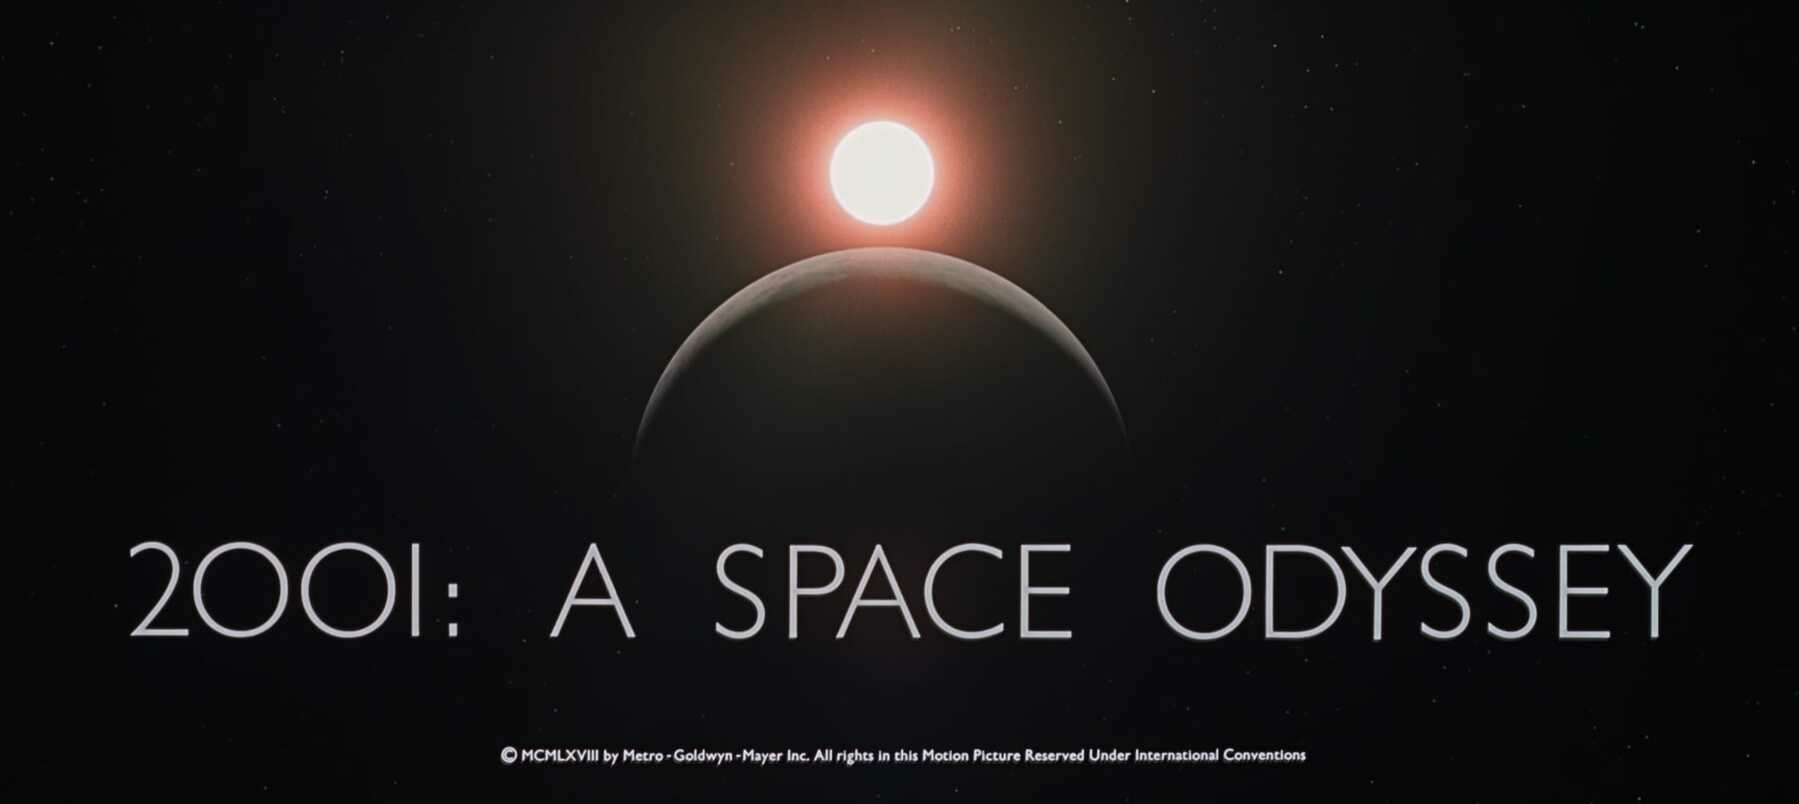 The title card for 2001: A Space Odyssey.